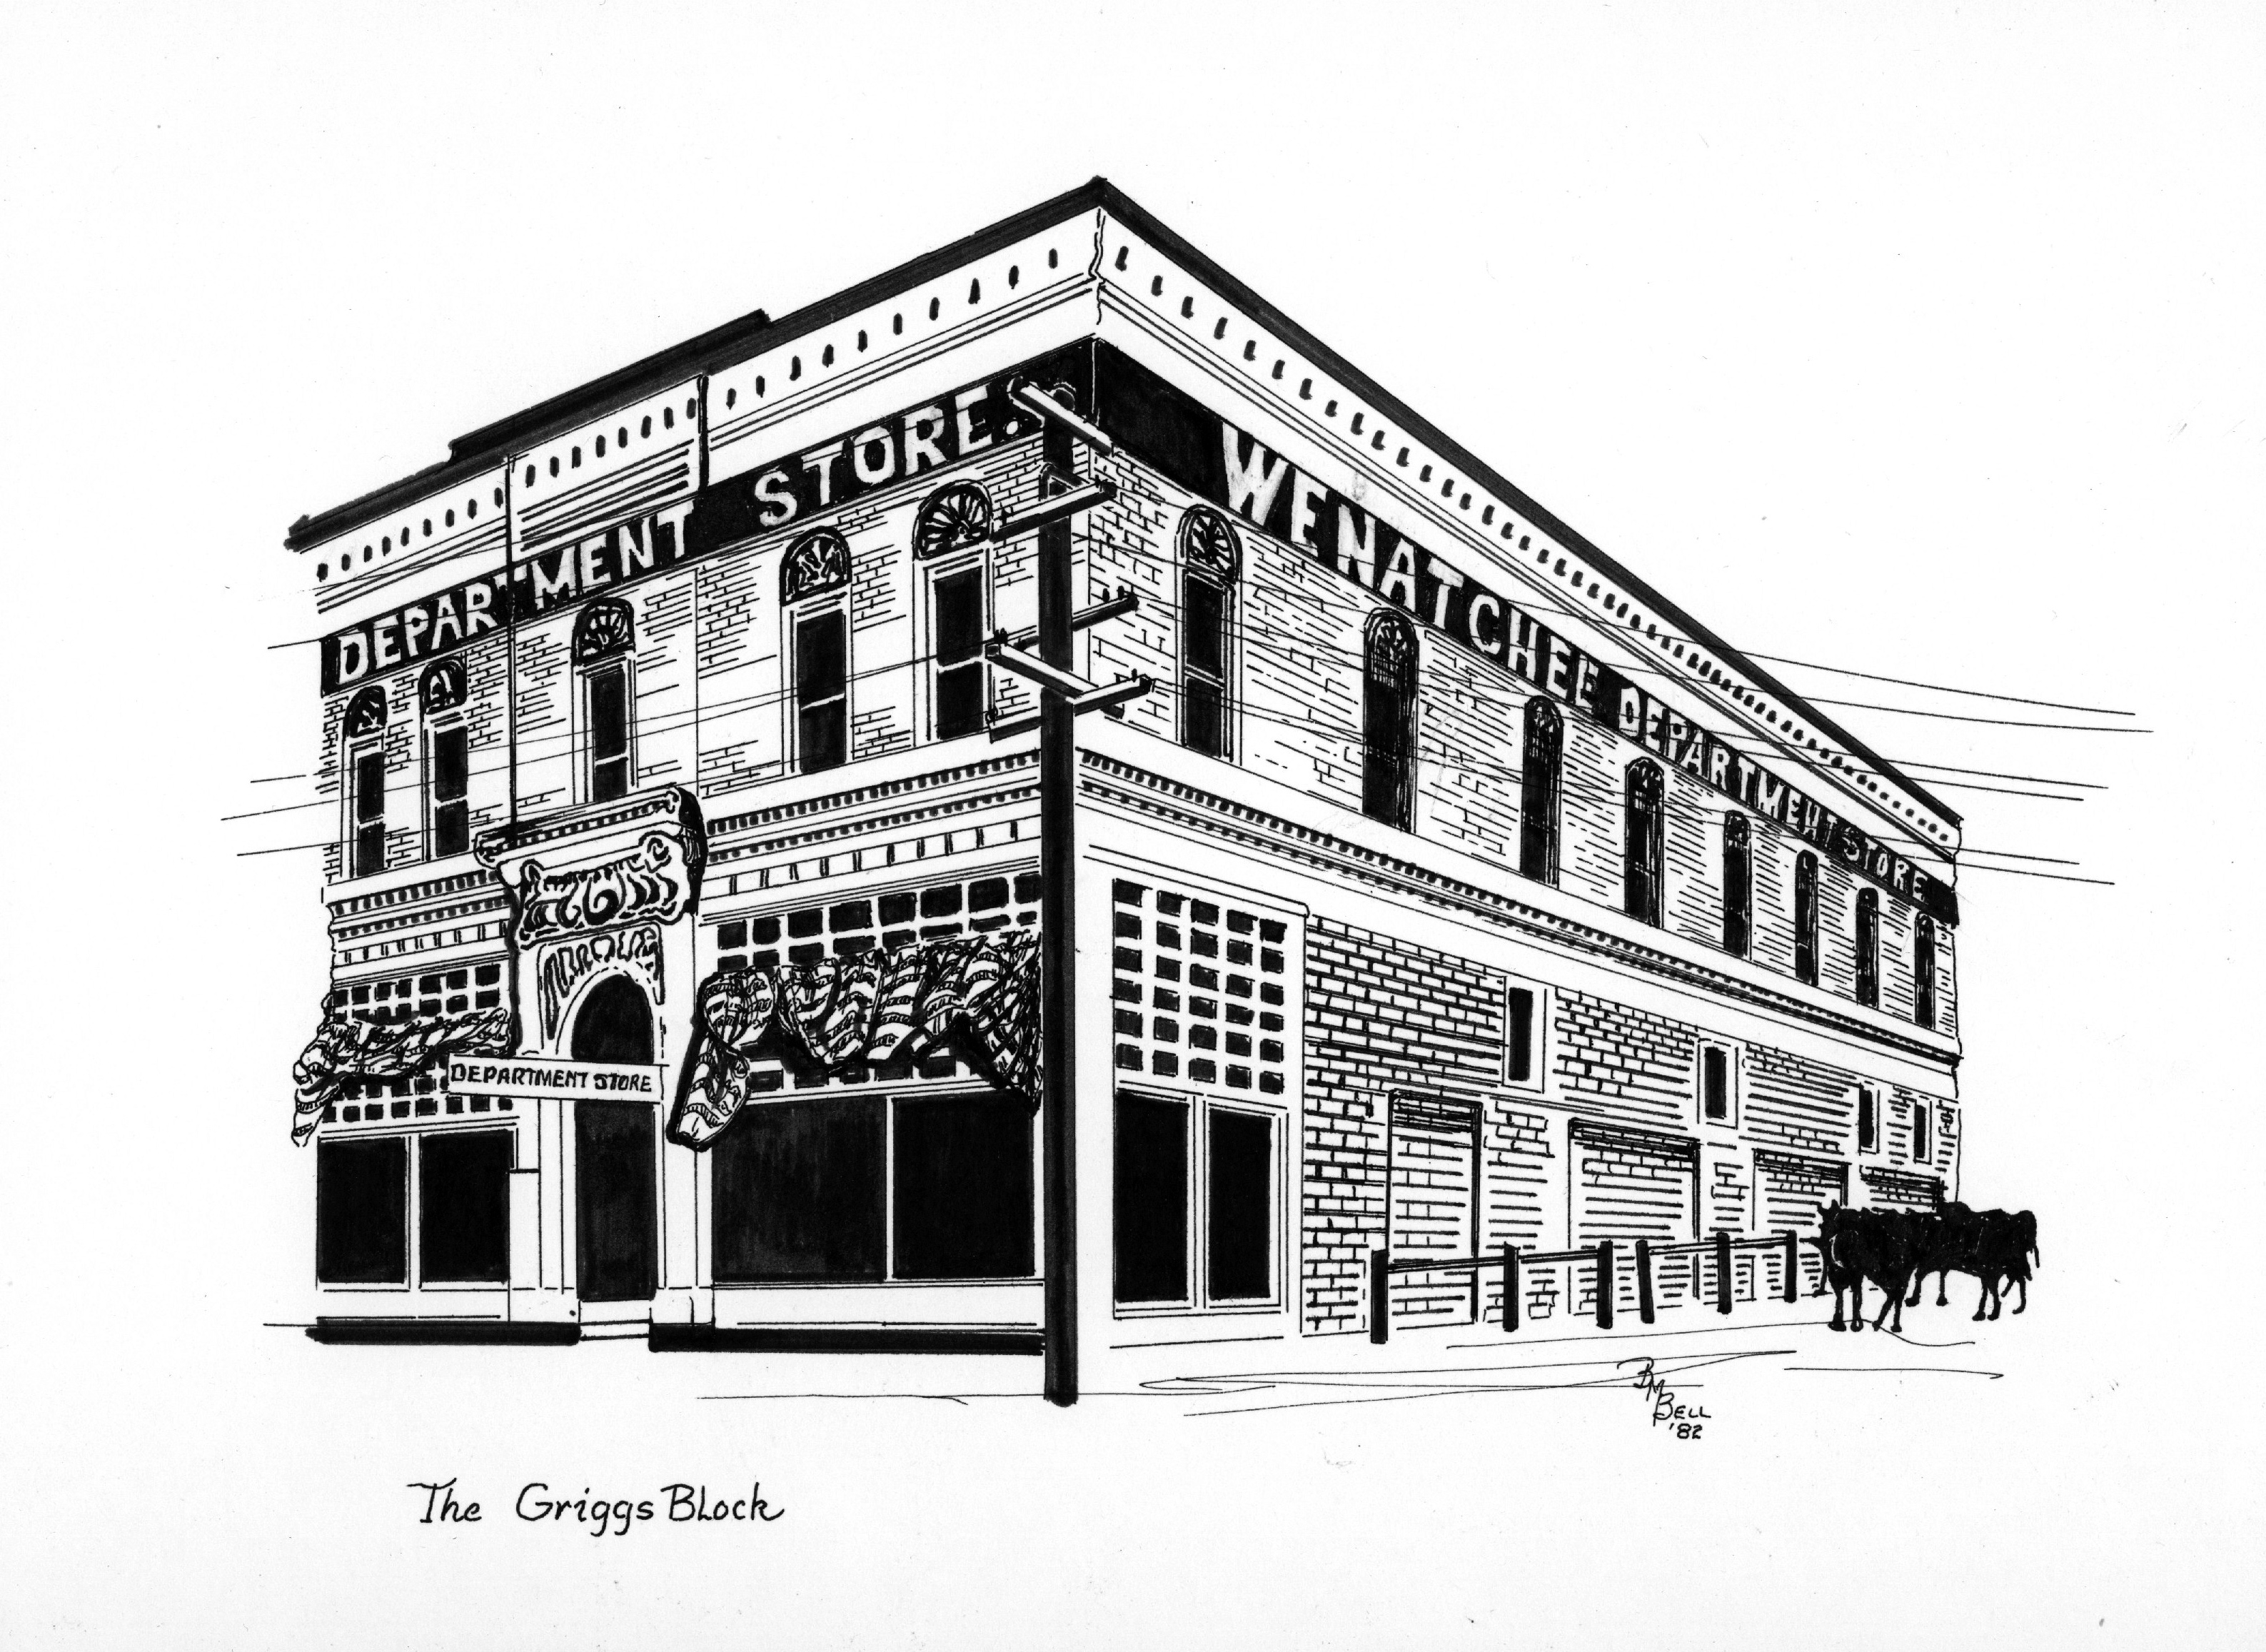 Illustration of the Griggs building by artist Betty Bell.